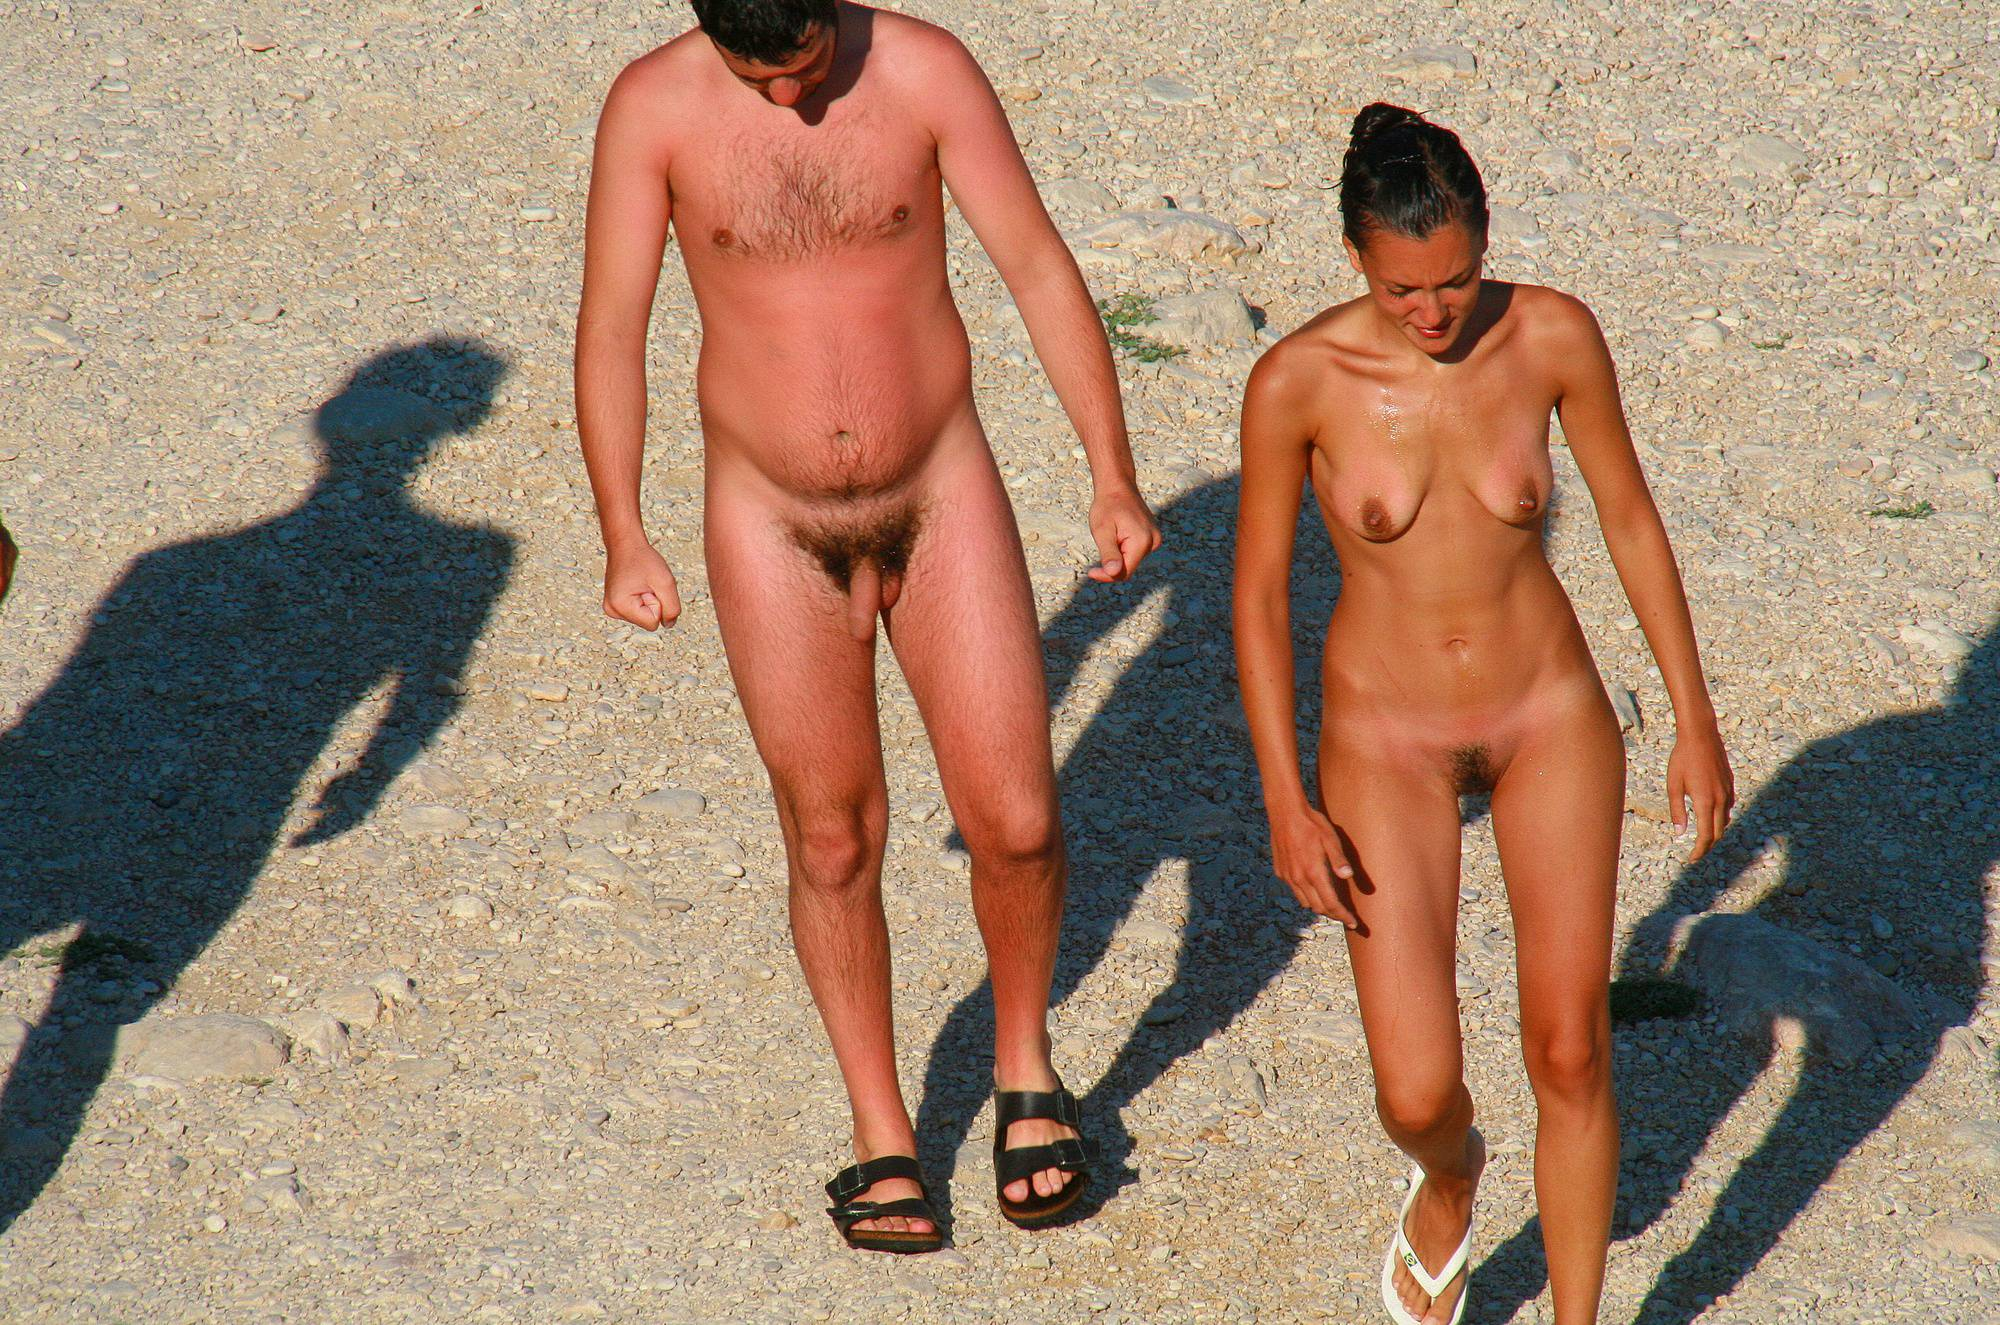 Nudist Pictures Ula FKK Dating Couples Day - 2